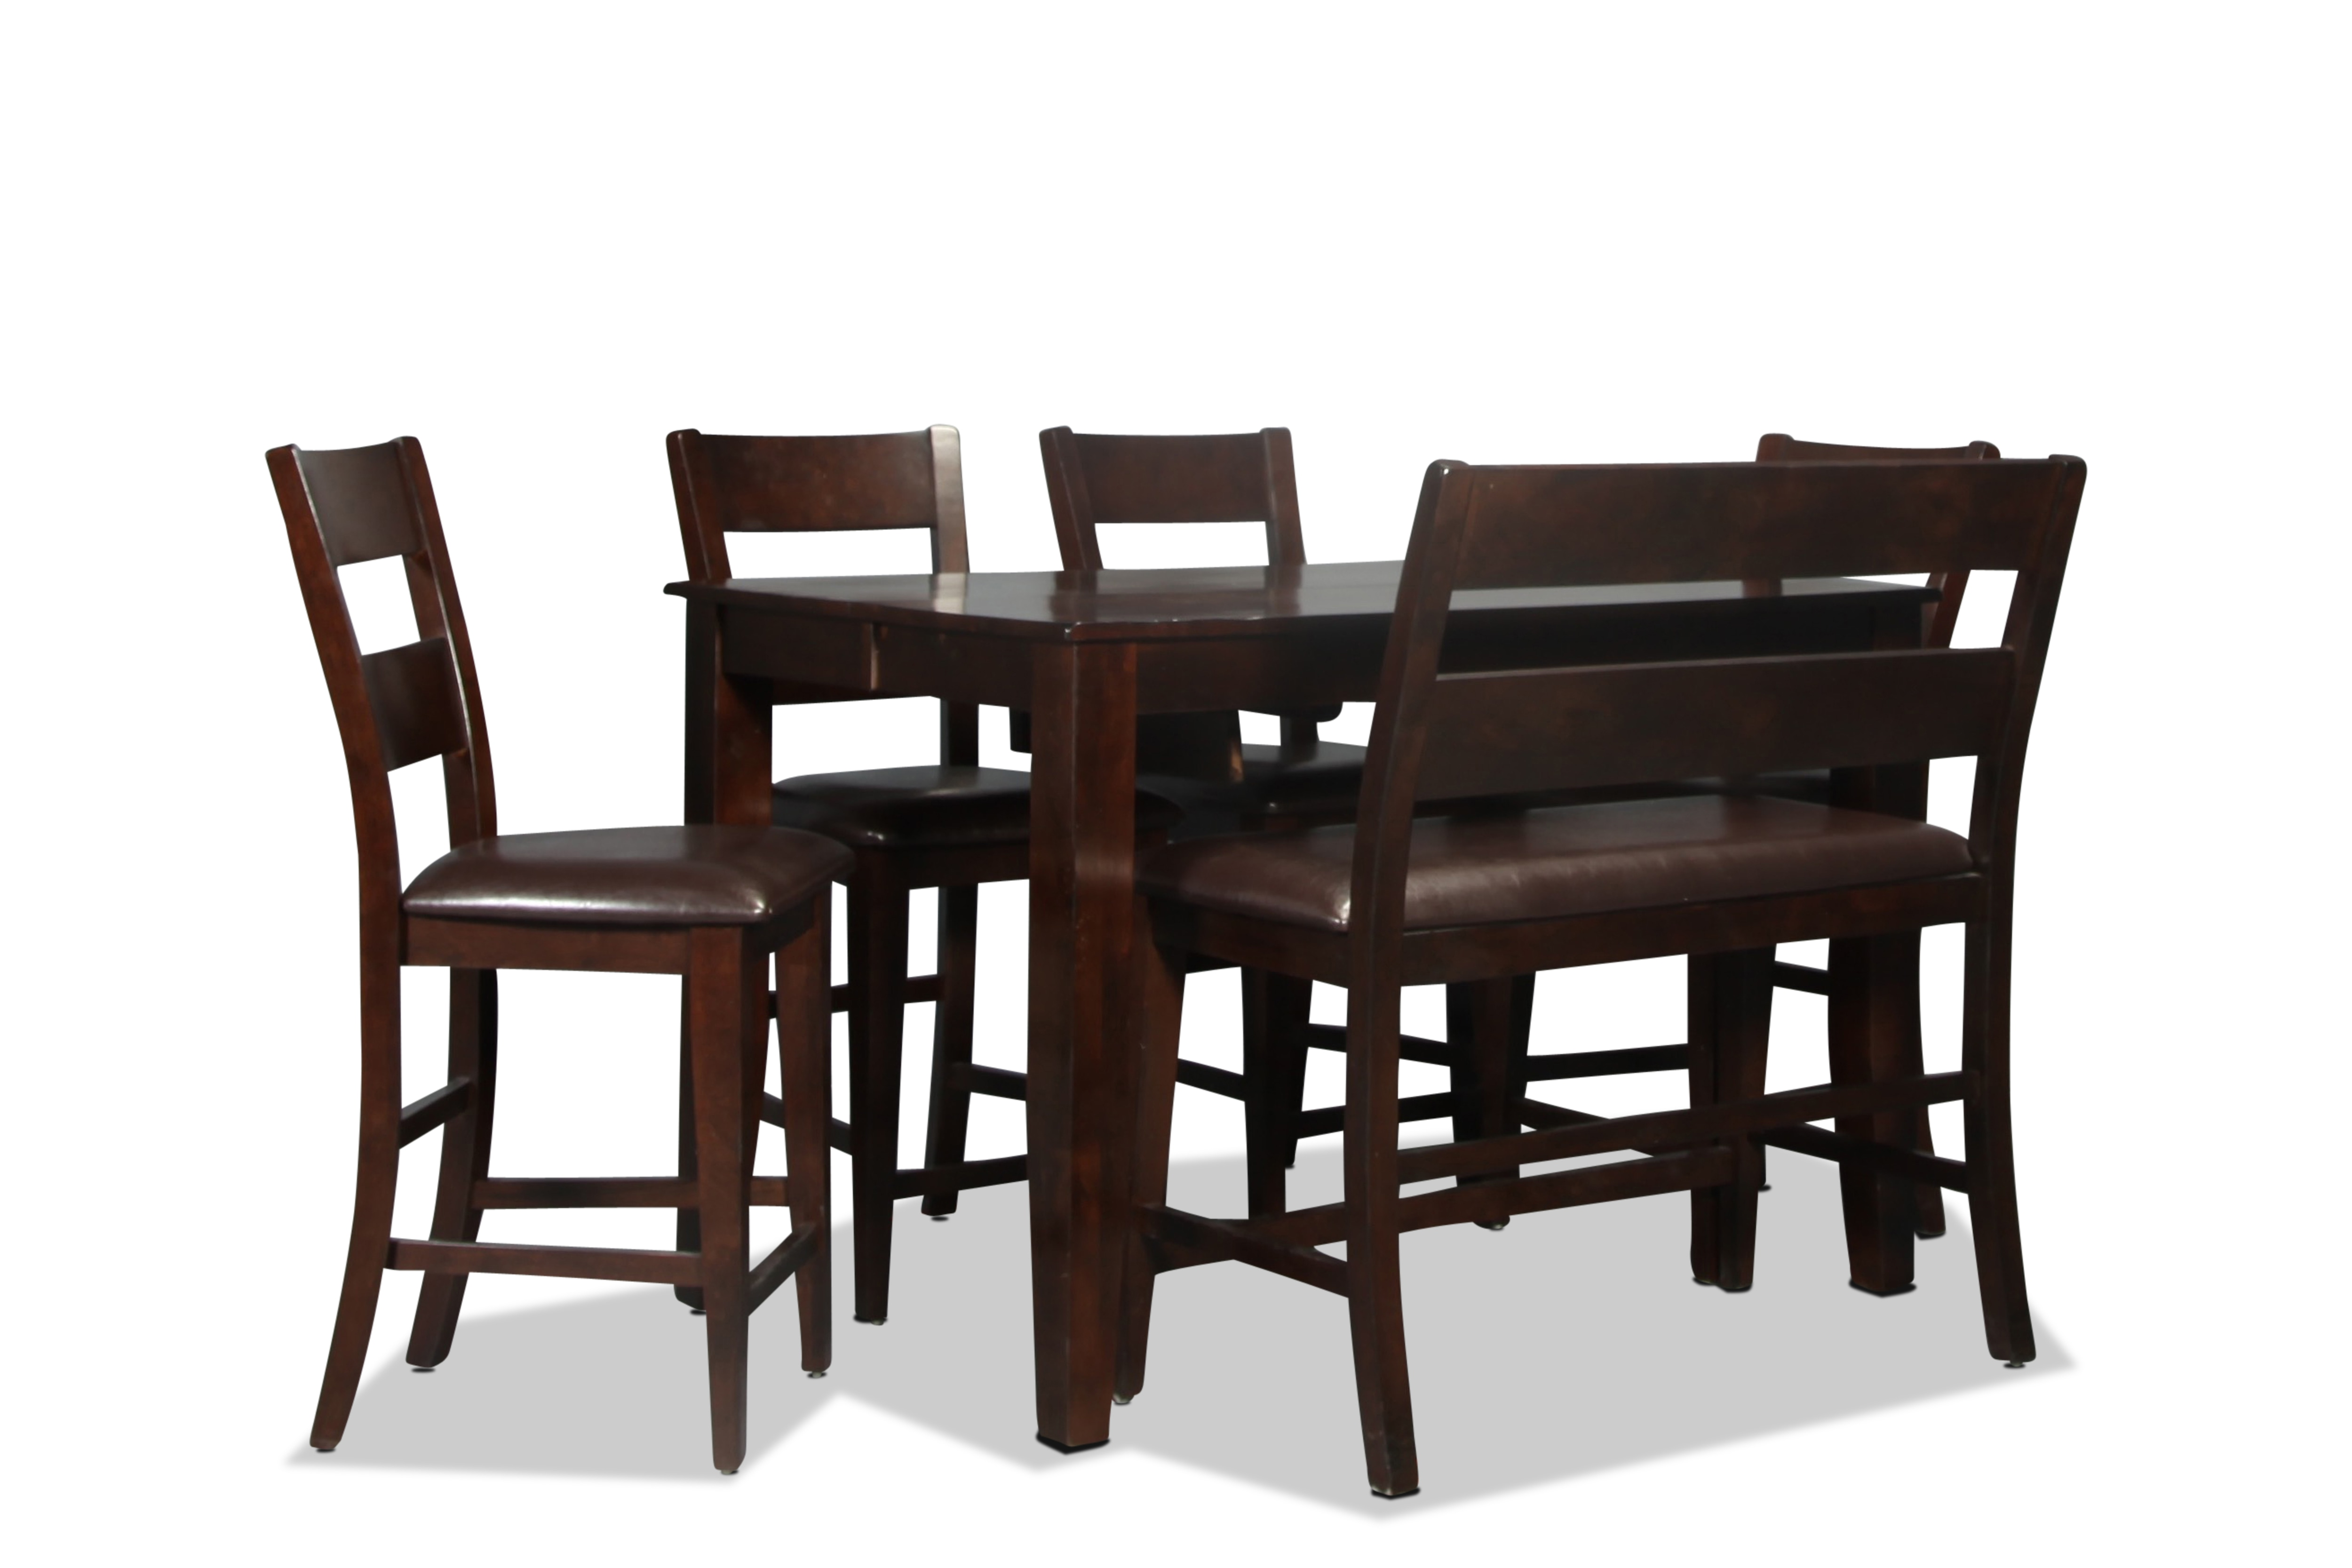 Dining Room Furniture - Urban View Pub Table and 4 Pub Chairs - Dark Cherry